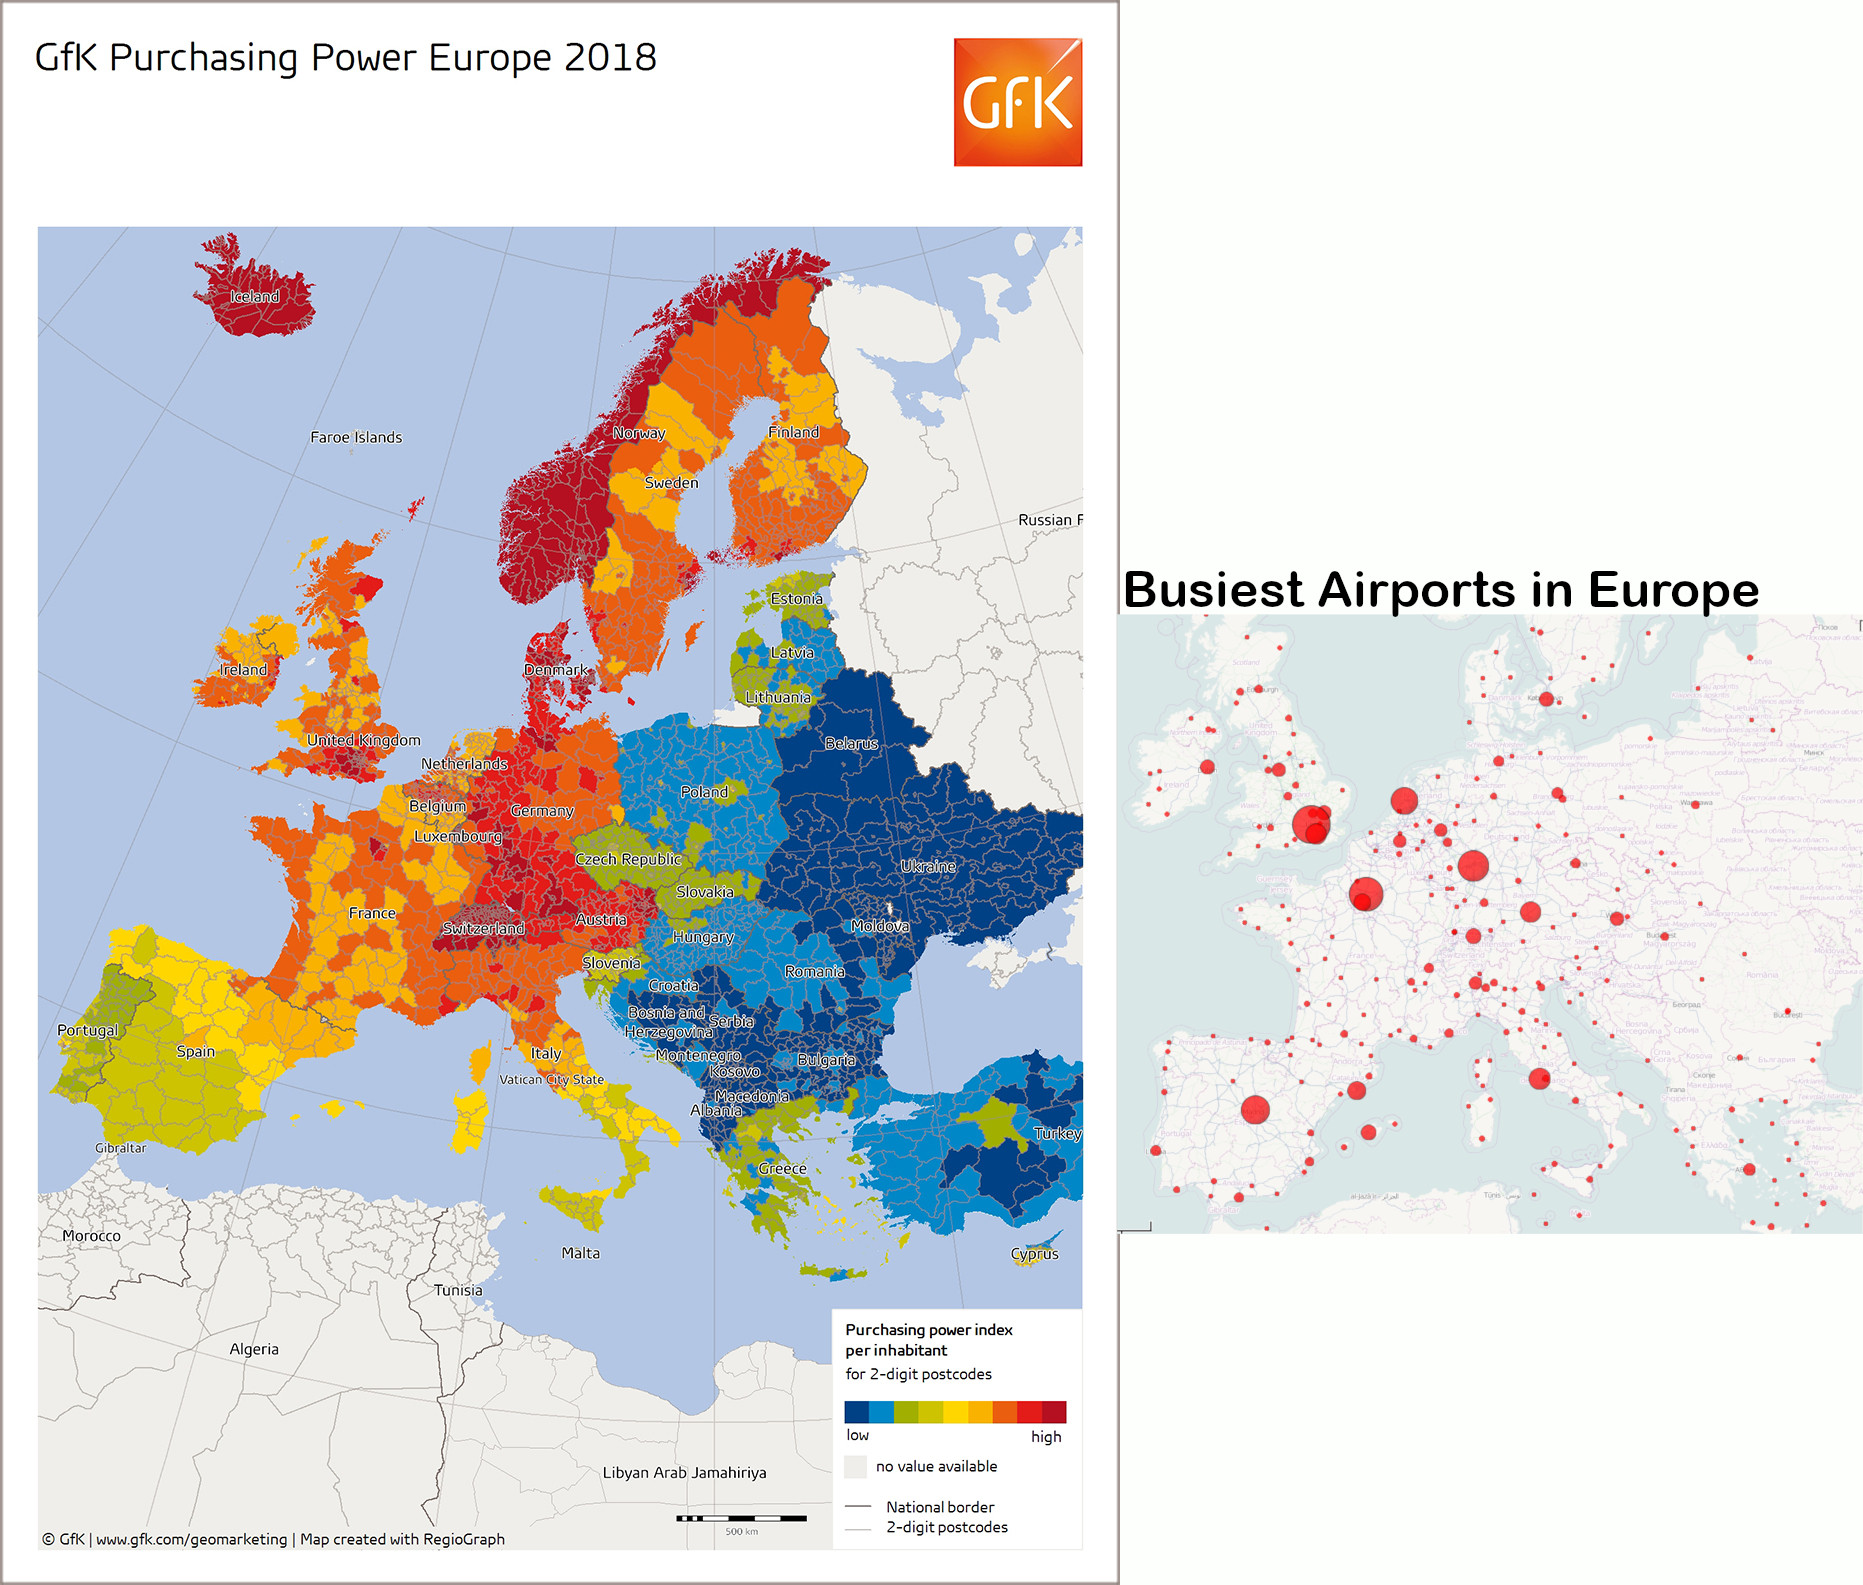 Maps of GFK Purchasing Power Europe 2018 and Wikiepedia Busiest Airports in Europe